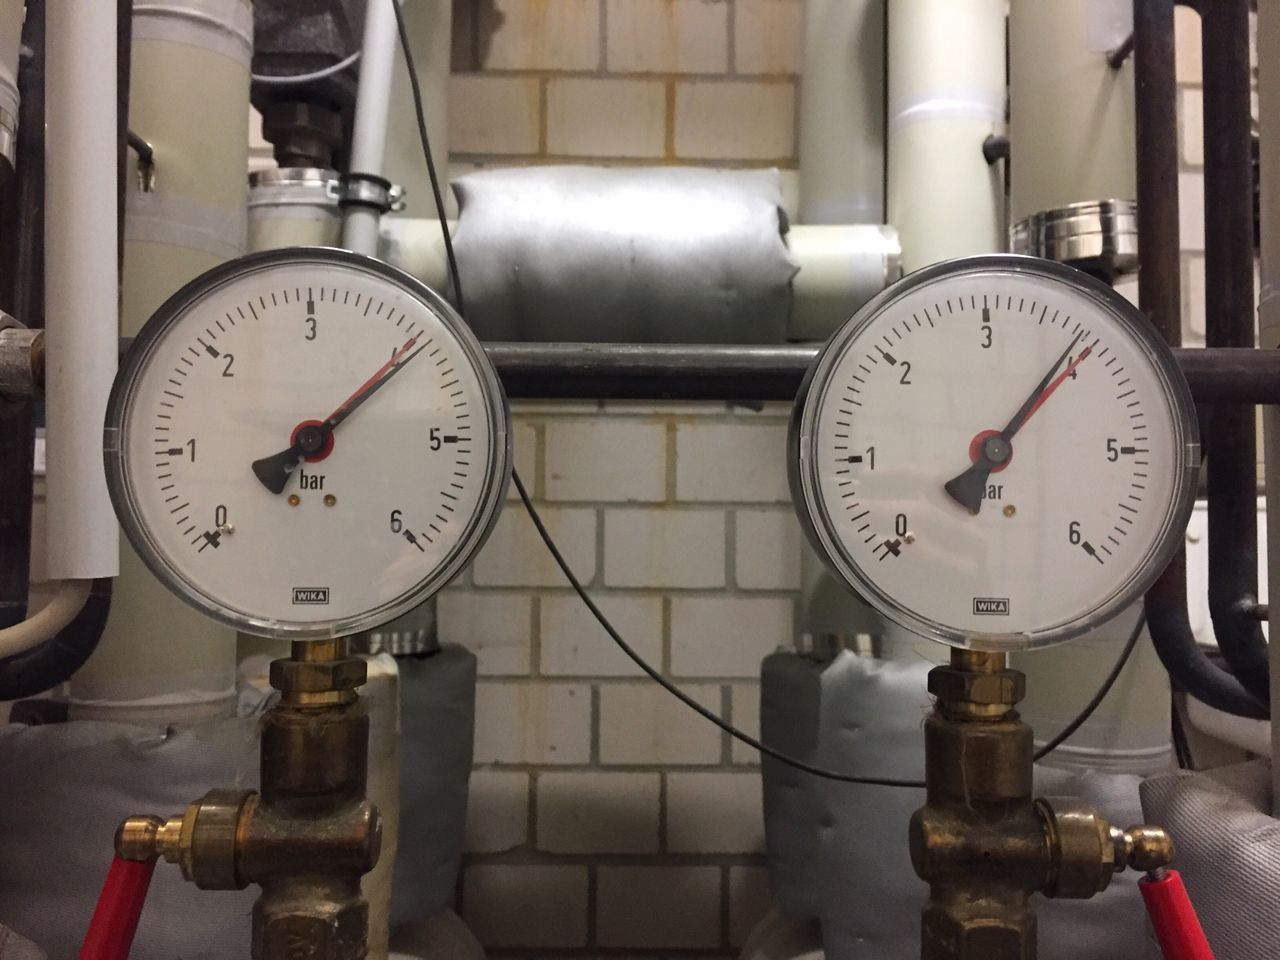 Gauge Pressure Gauge Instrument Of Measurement Industry Factory Pipe - Tube Meter - Instrument Of Measurement Machinery Indoors  Manufacturing Equipment Machine Part Number Technology Fuel And Power Generation No People Industrial Equipment Close-up Power Station Day